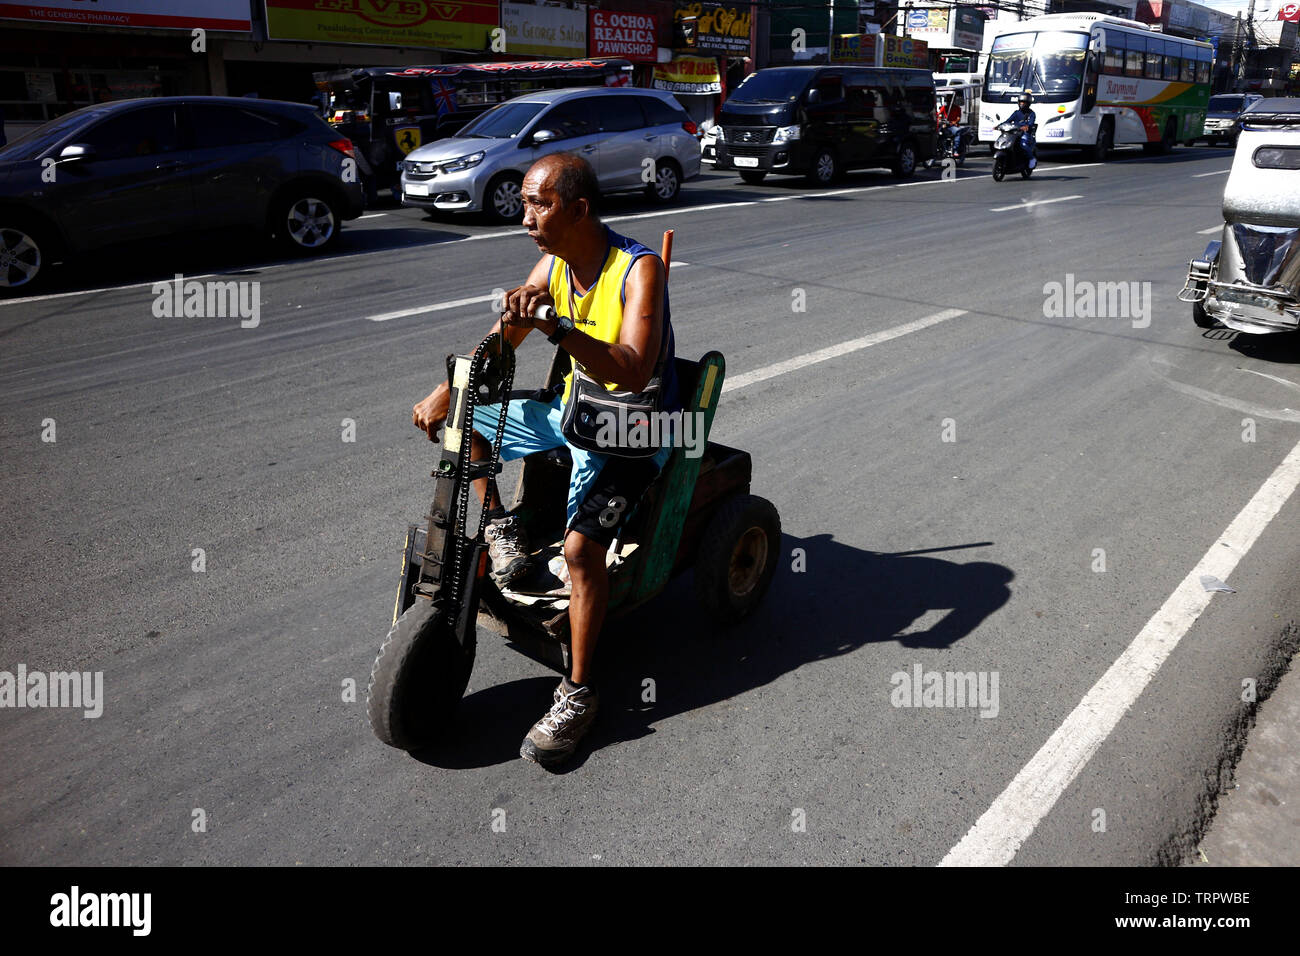 ANTIPOLO CITY, PHILIPPINES – JUNE 7, 2019: A person with disability peddles candies and cigarettes on his improvised wheelchair at a busy street. - Stock Image